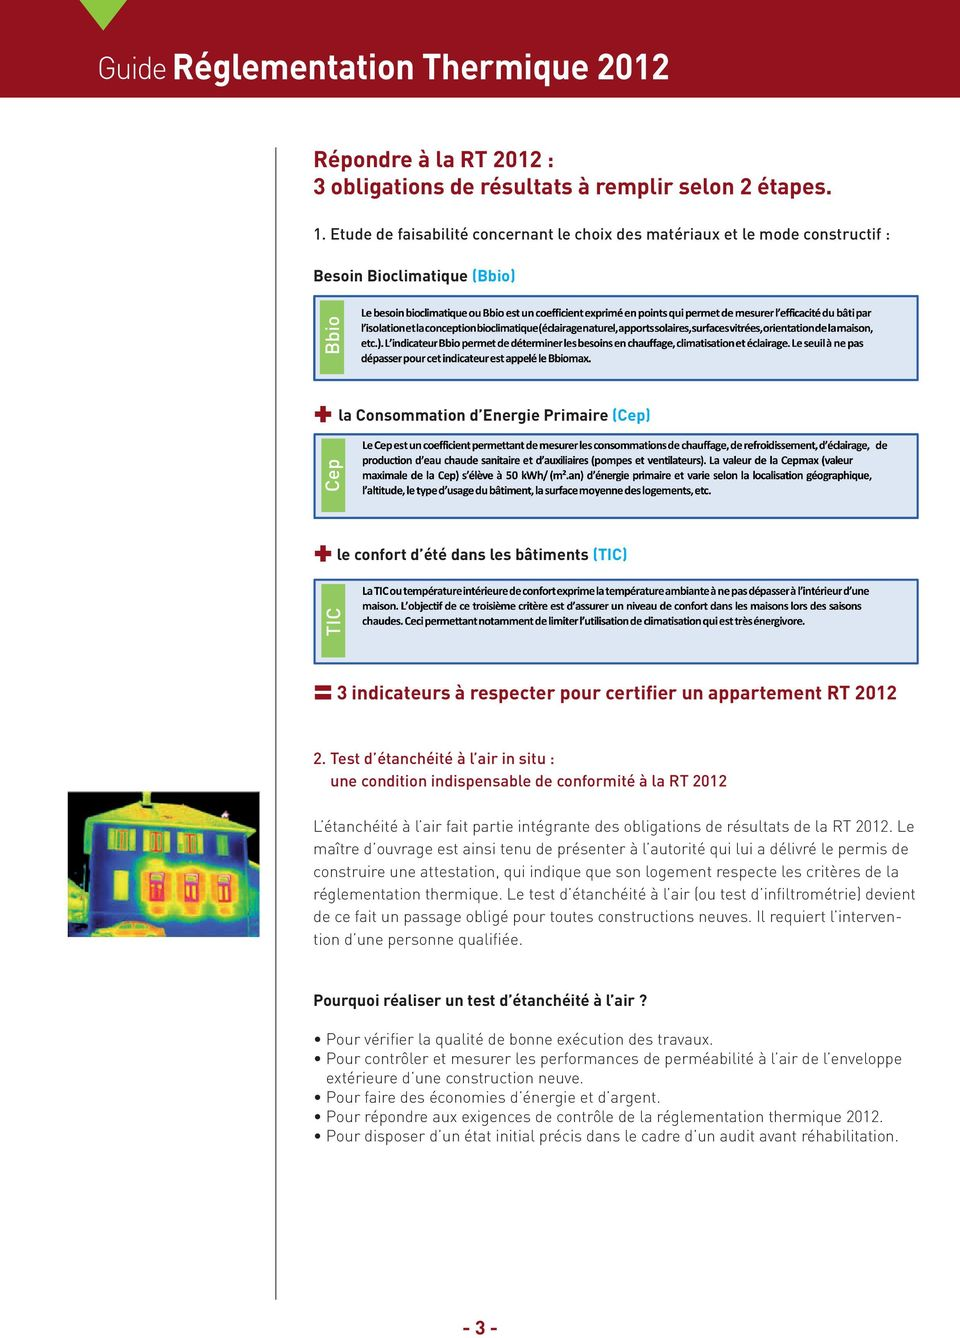 Cep Bbio = 3 indicateurs à respecter pour certifier un appartement RT 2012 2.